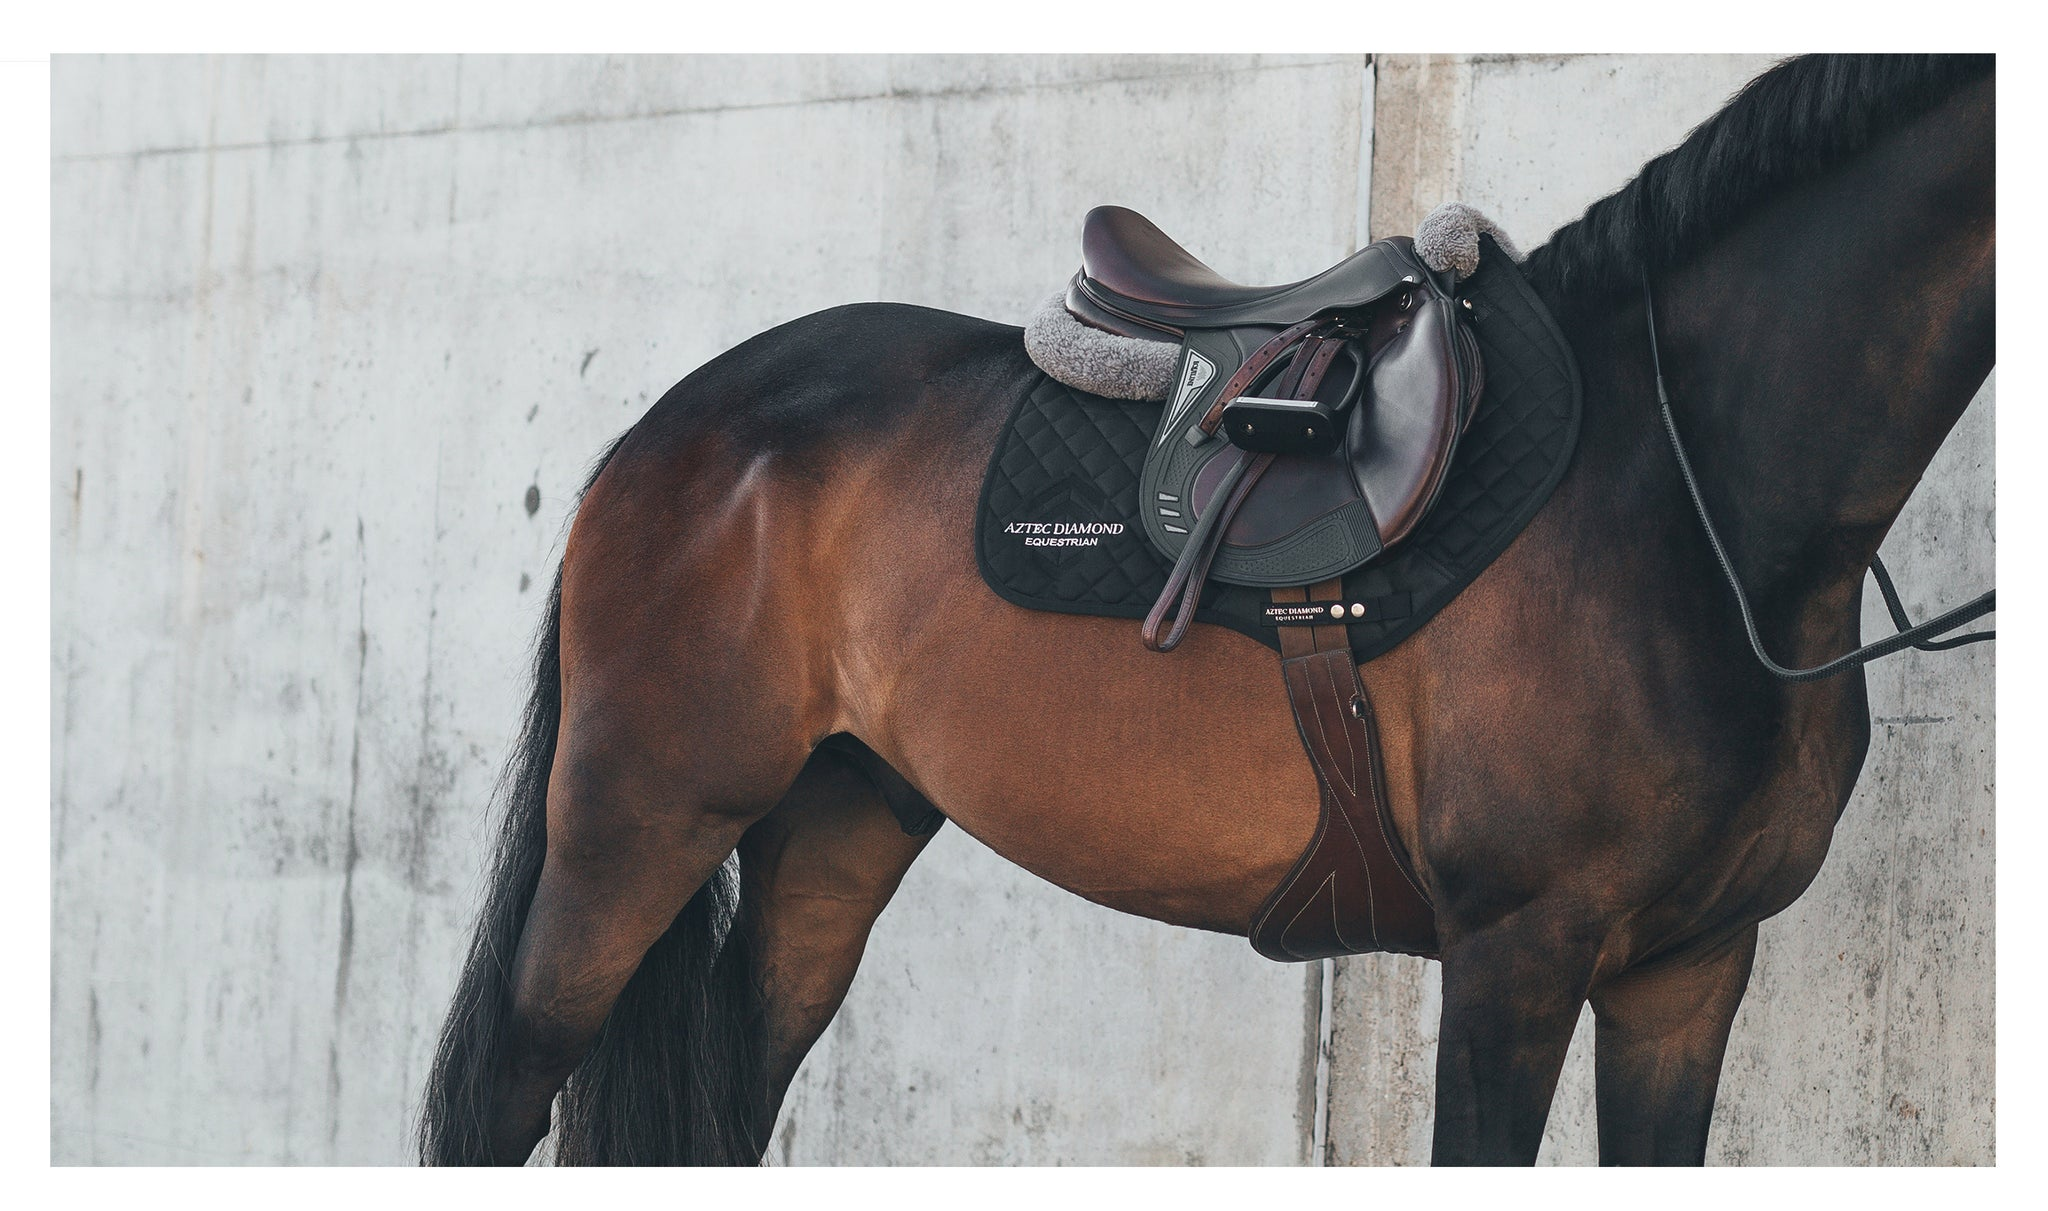 Aztec Diamond Launch Their First Horse Wear Range Aztec